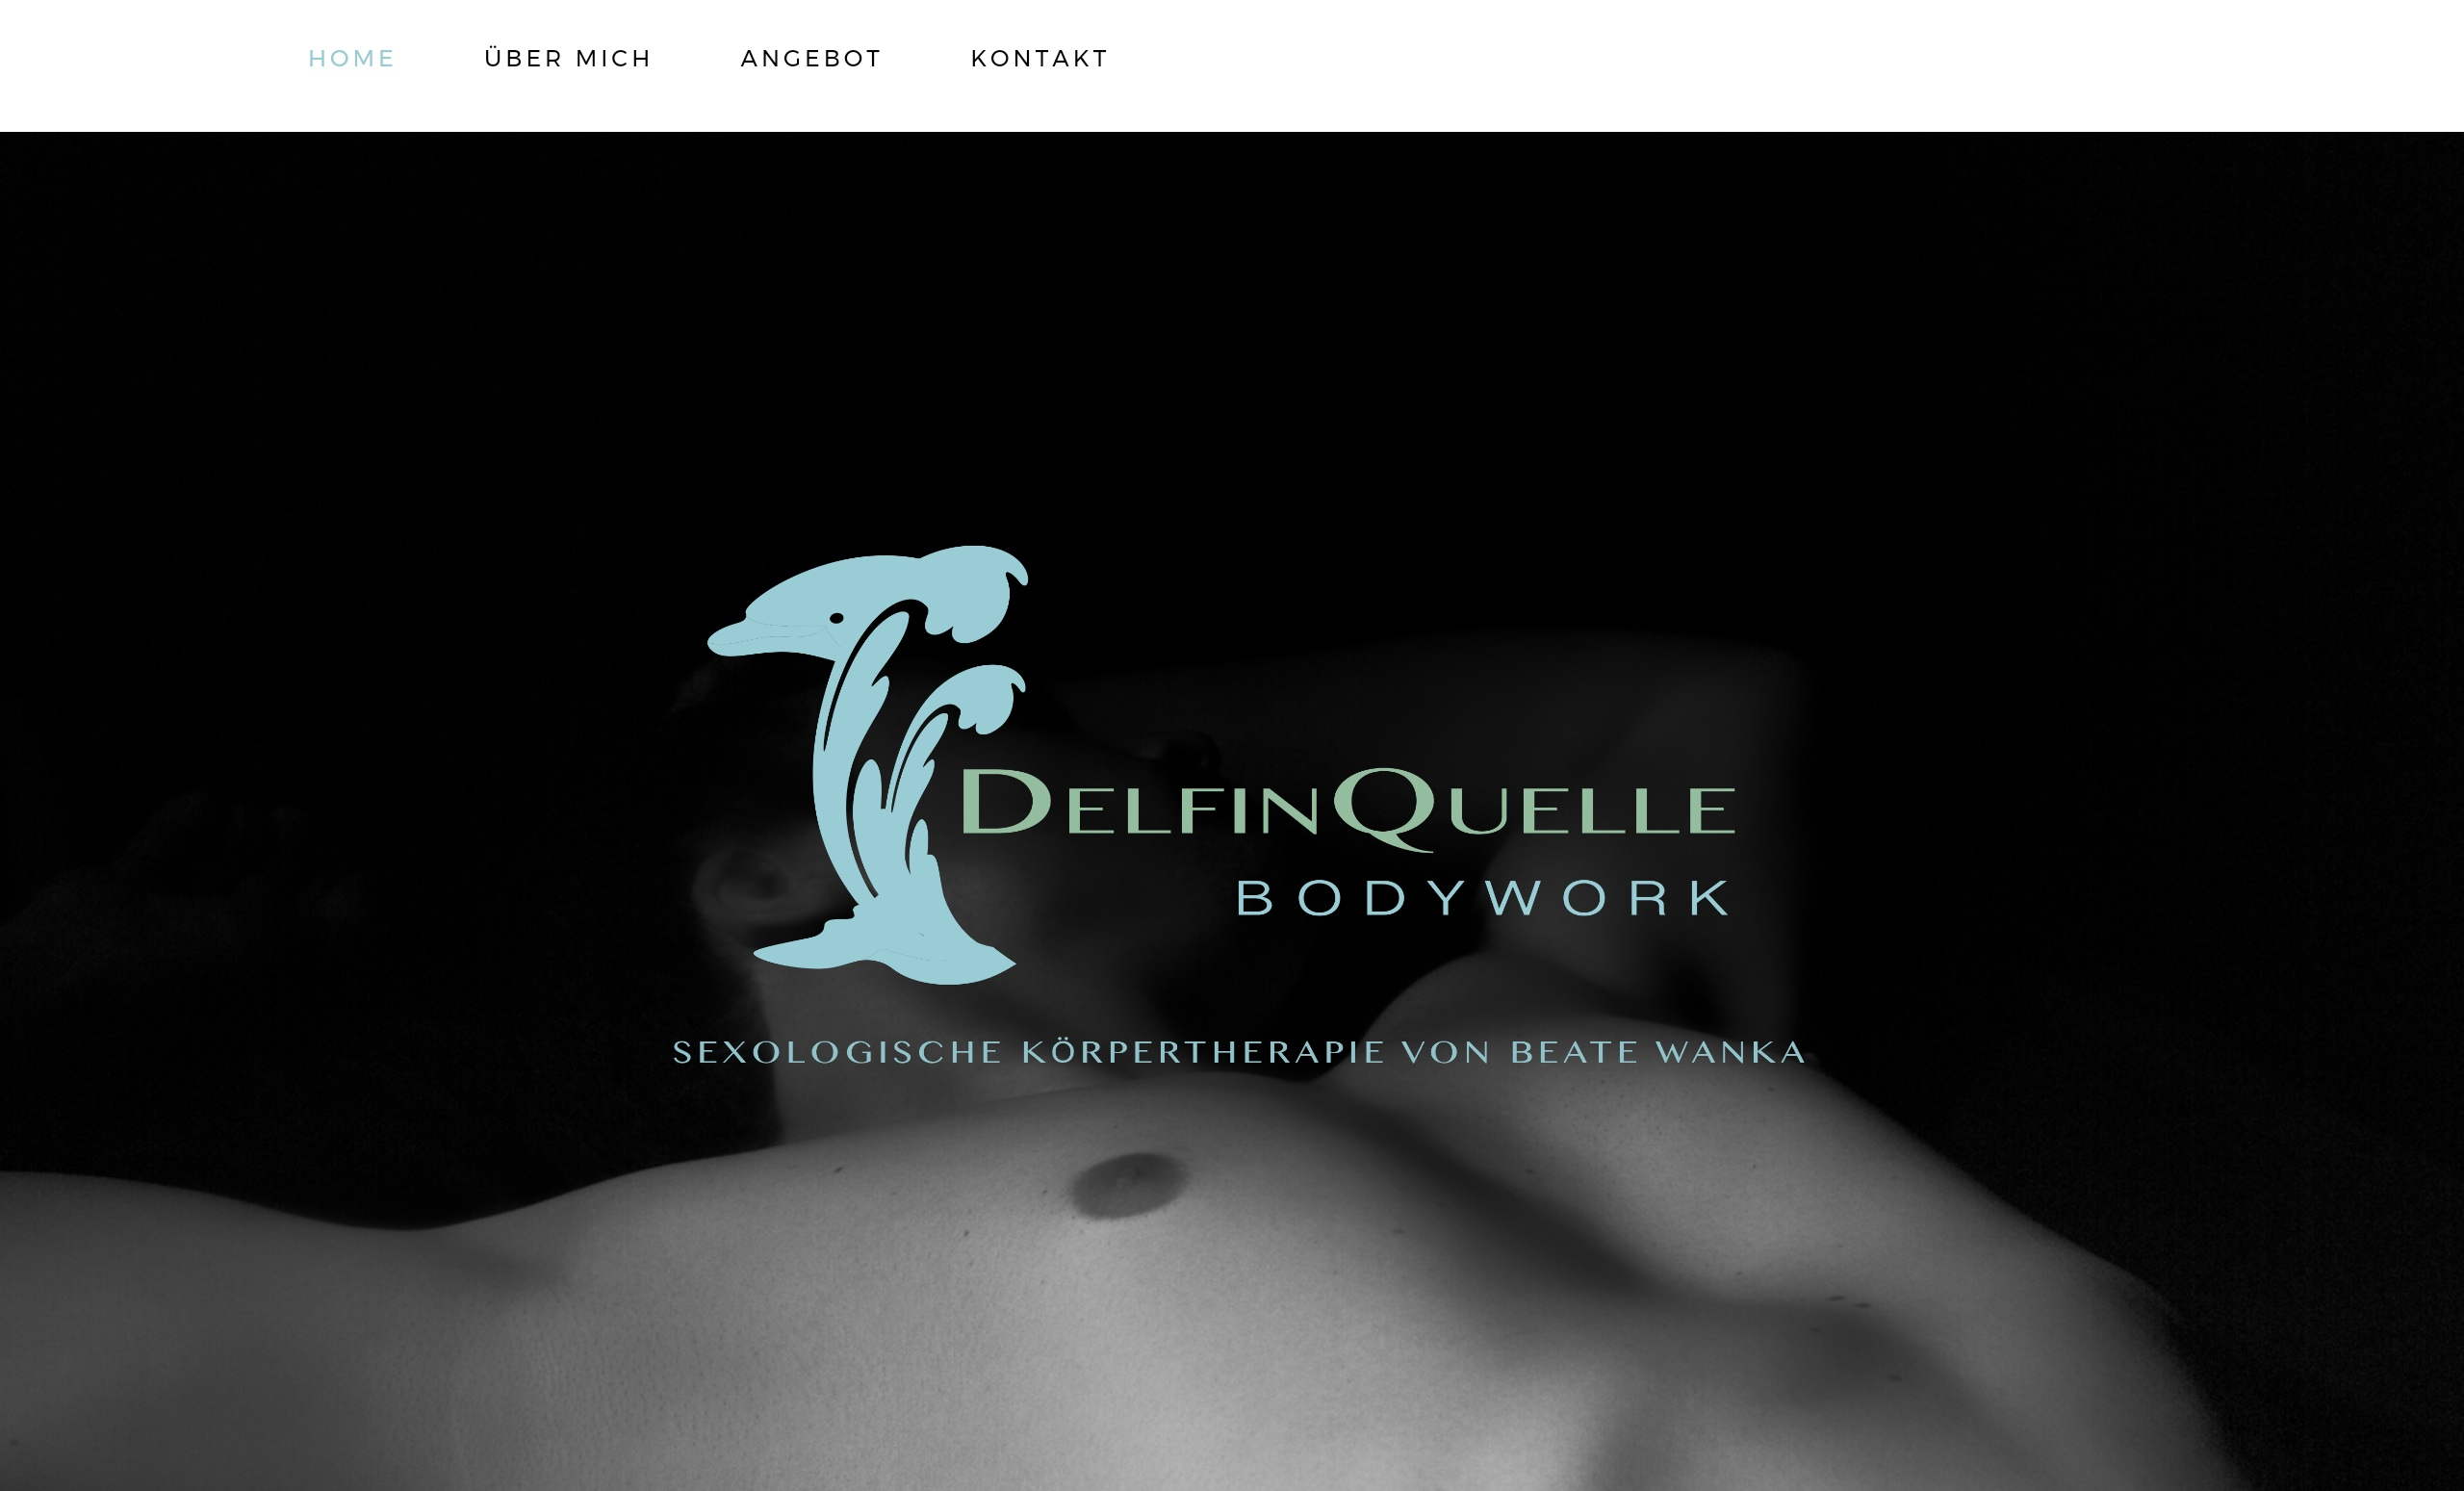 Delfinquelle Bodywork Website from Social52.ch